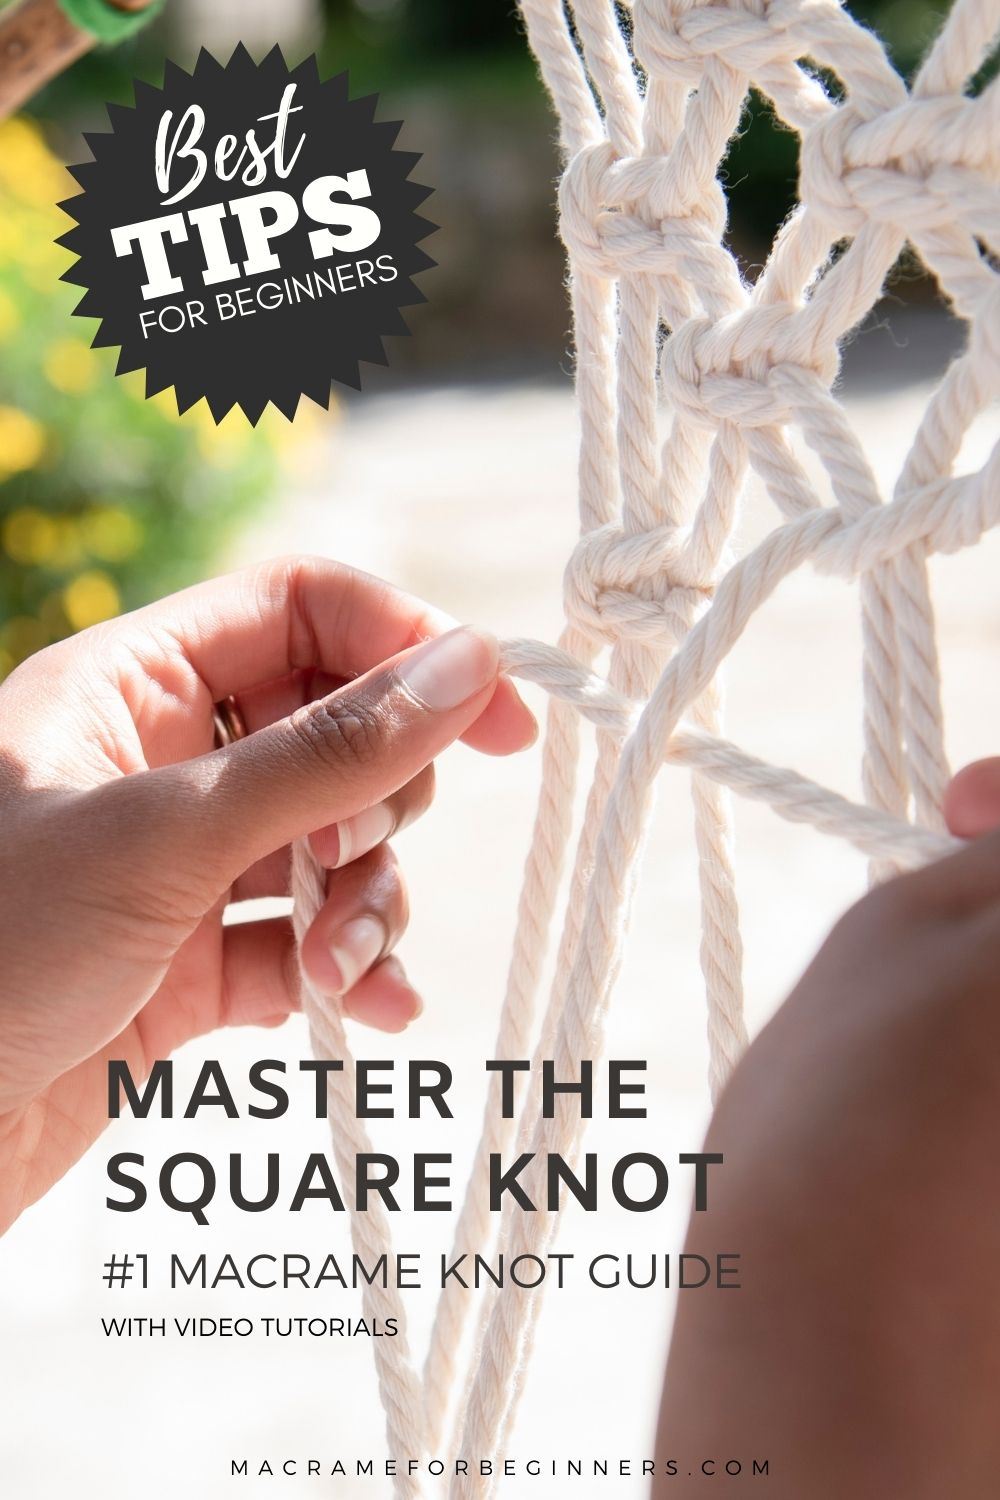 Square Knot Tutorial - #1 Macrame Knot Guide for Beginners